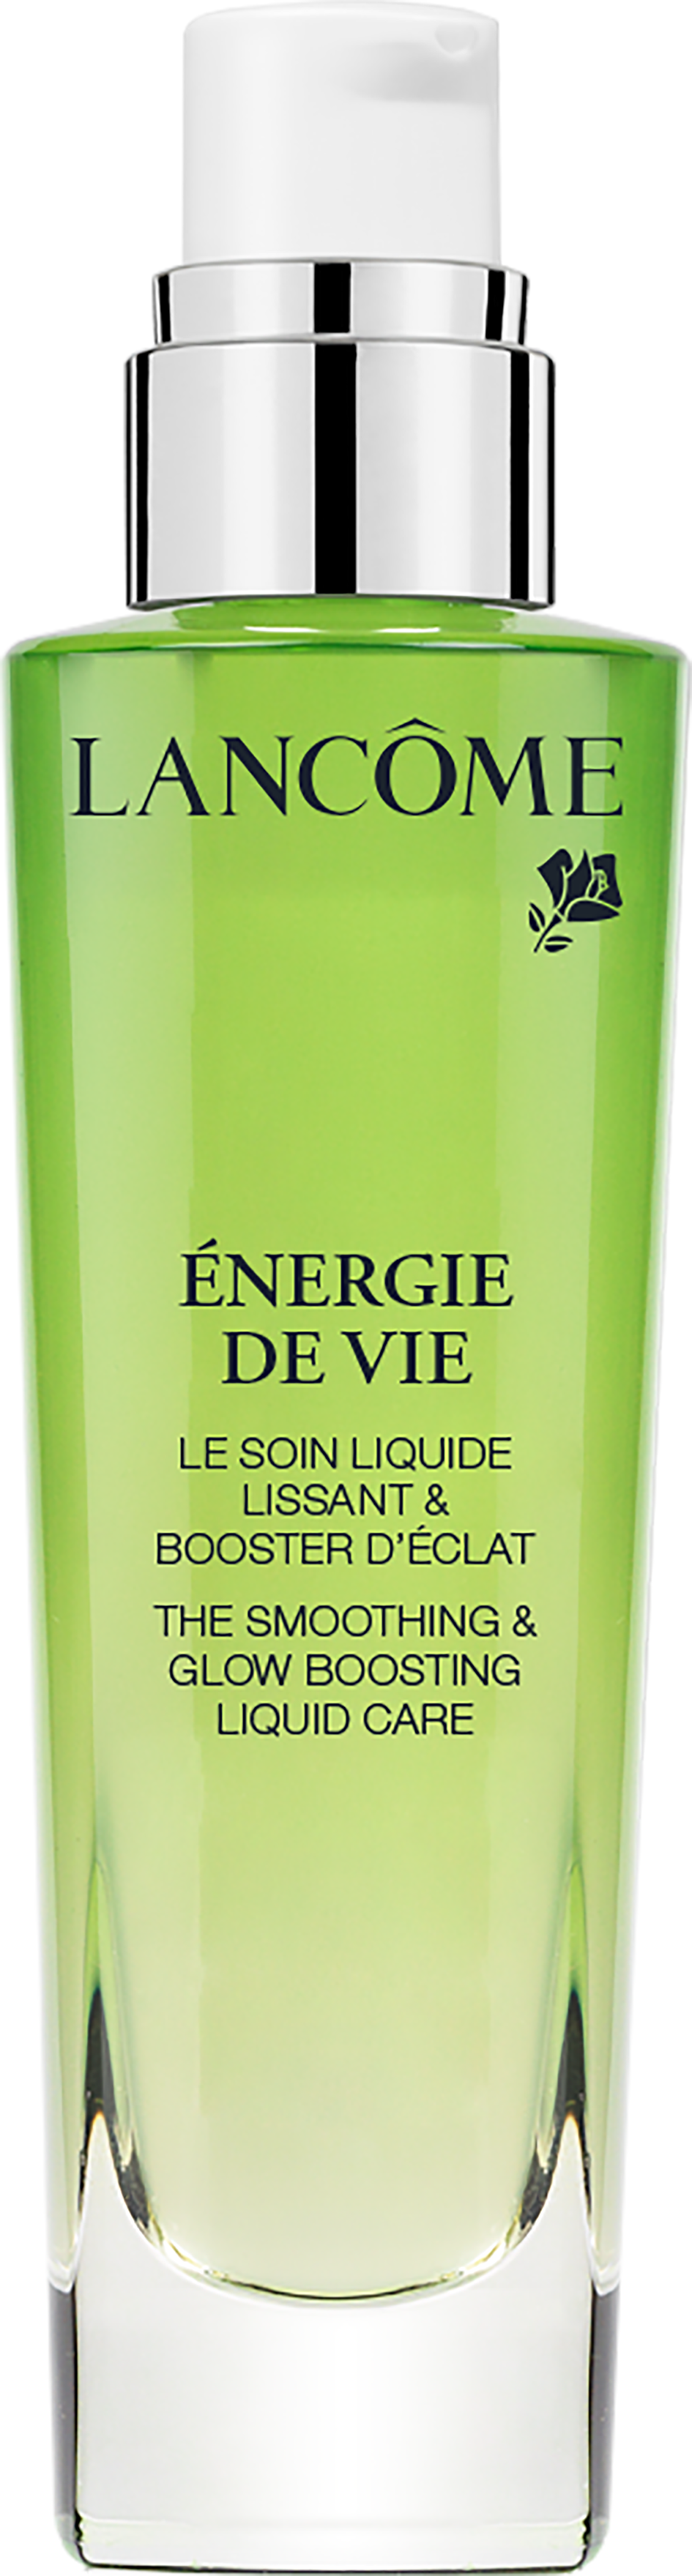 lancome-liquid-care-energie-de-vie-50ml-32990